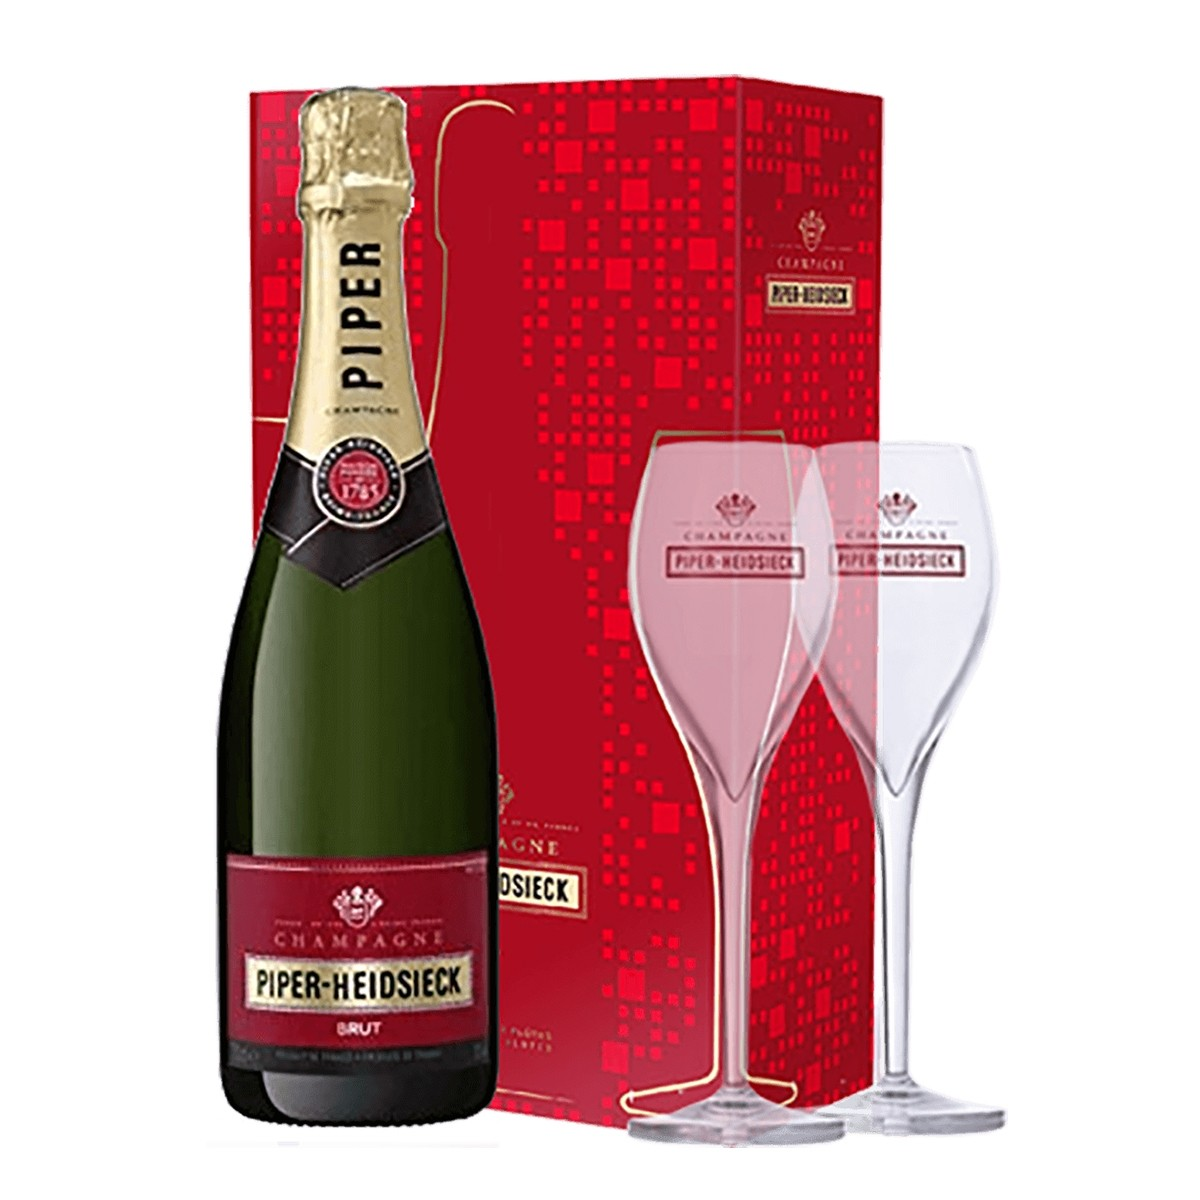 Champagne Piper Heidsieck Brut 750 ml + 2 pahare